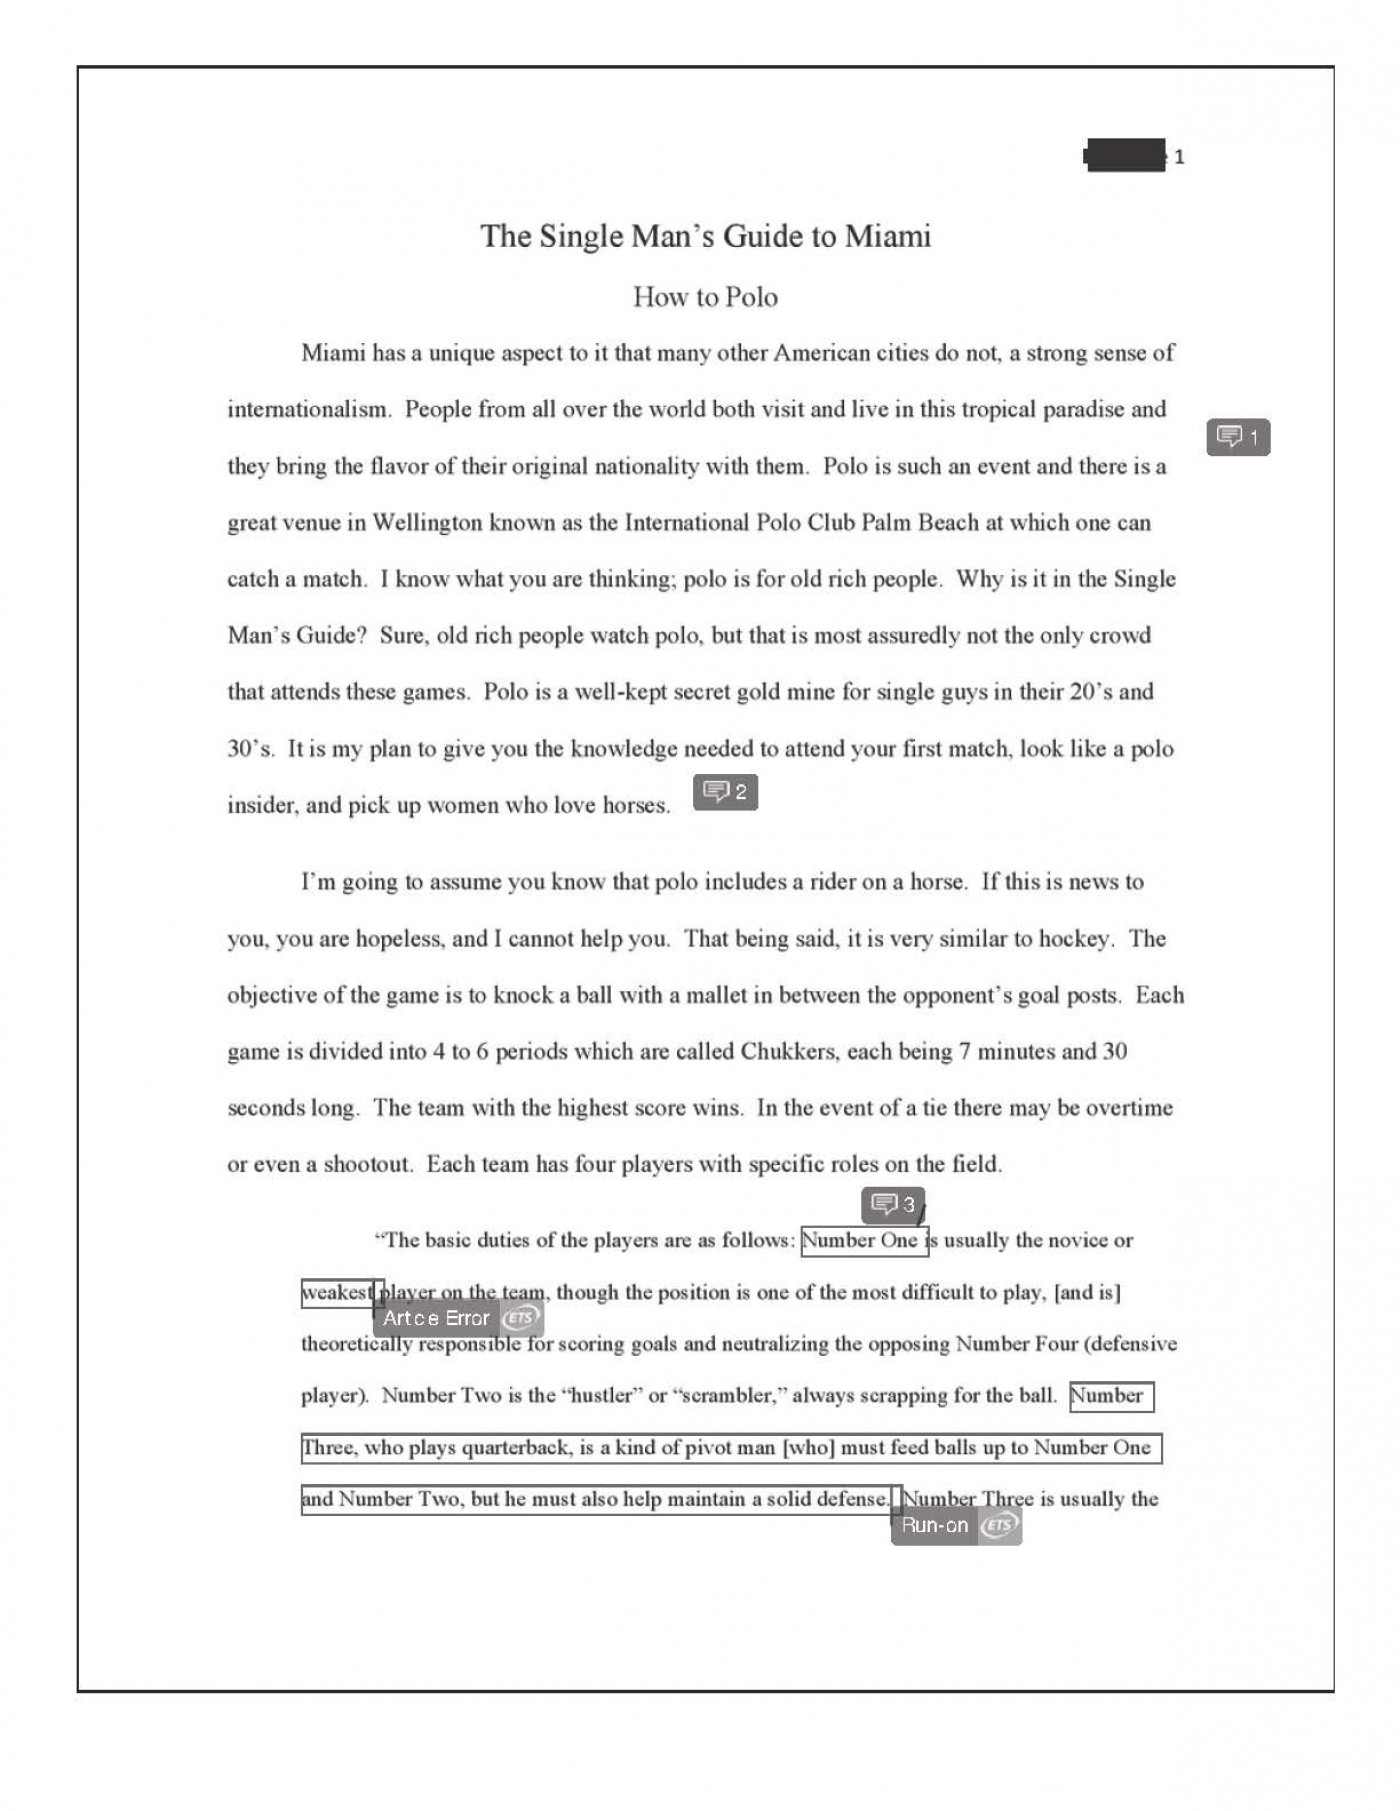 007 Informative Essay Kinds Of Writing Types Essays The Center In Hindi Final How To Polo Redacted P Pdf Task Slideshare Ppt Withs Wikipedia Dreaded Prompts 5th Grade 9th Graphic Organizer 1400